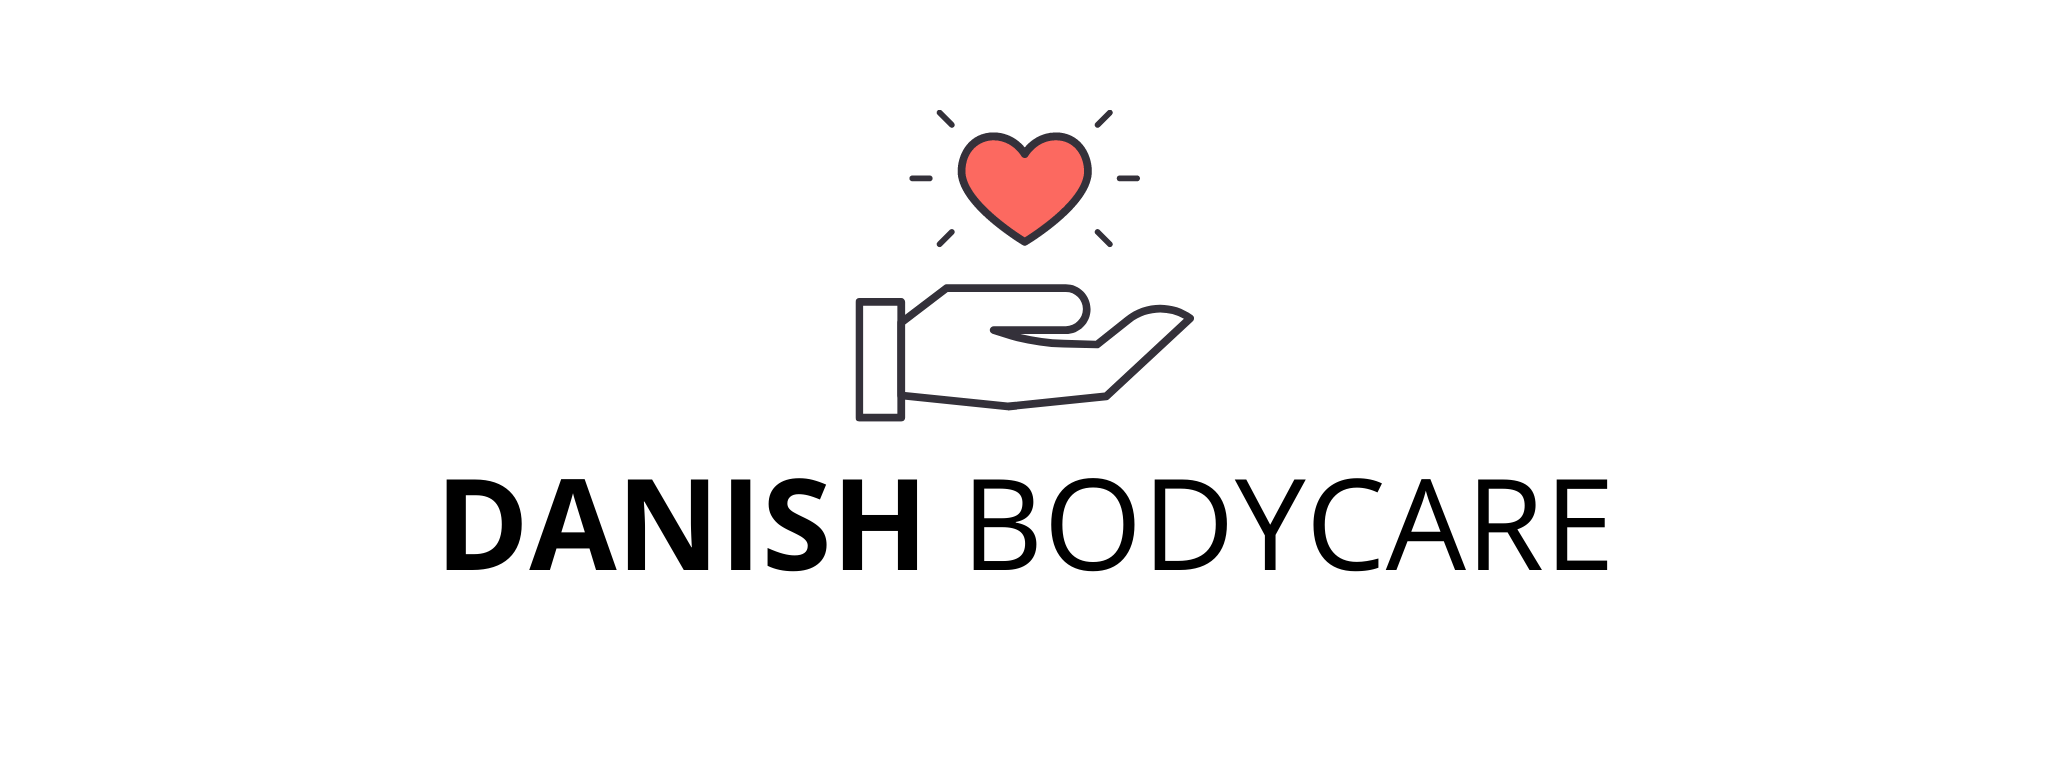 Danish Bodycare